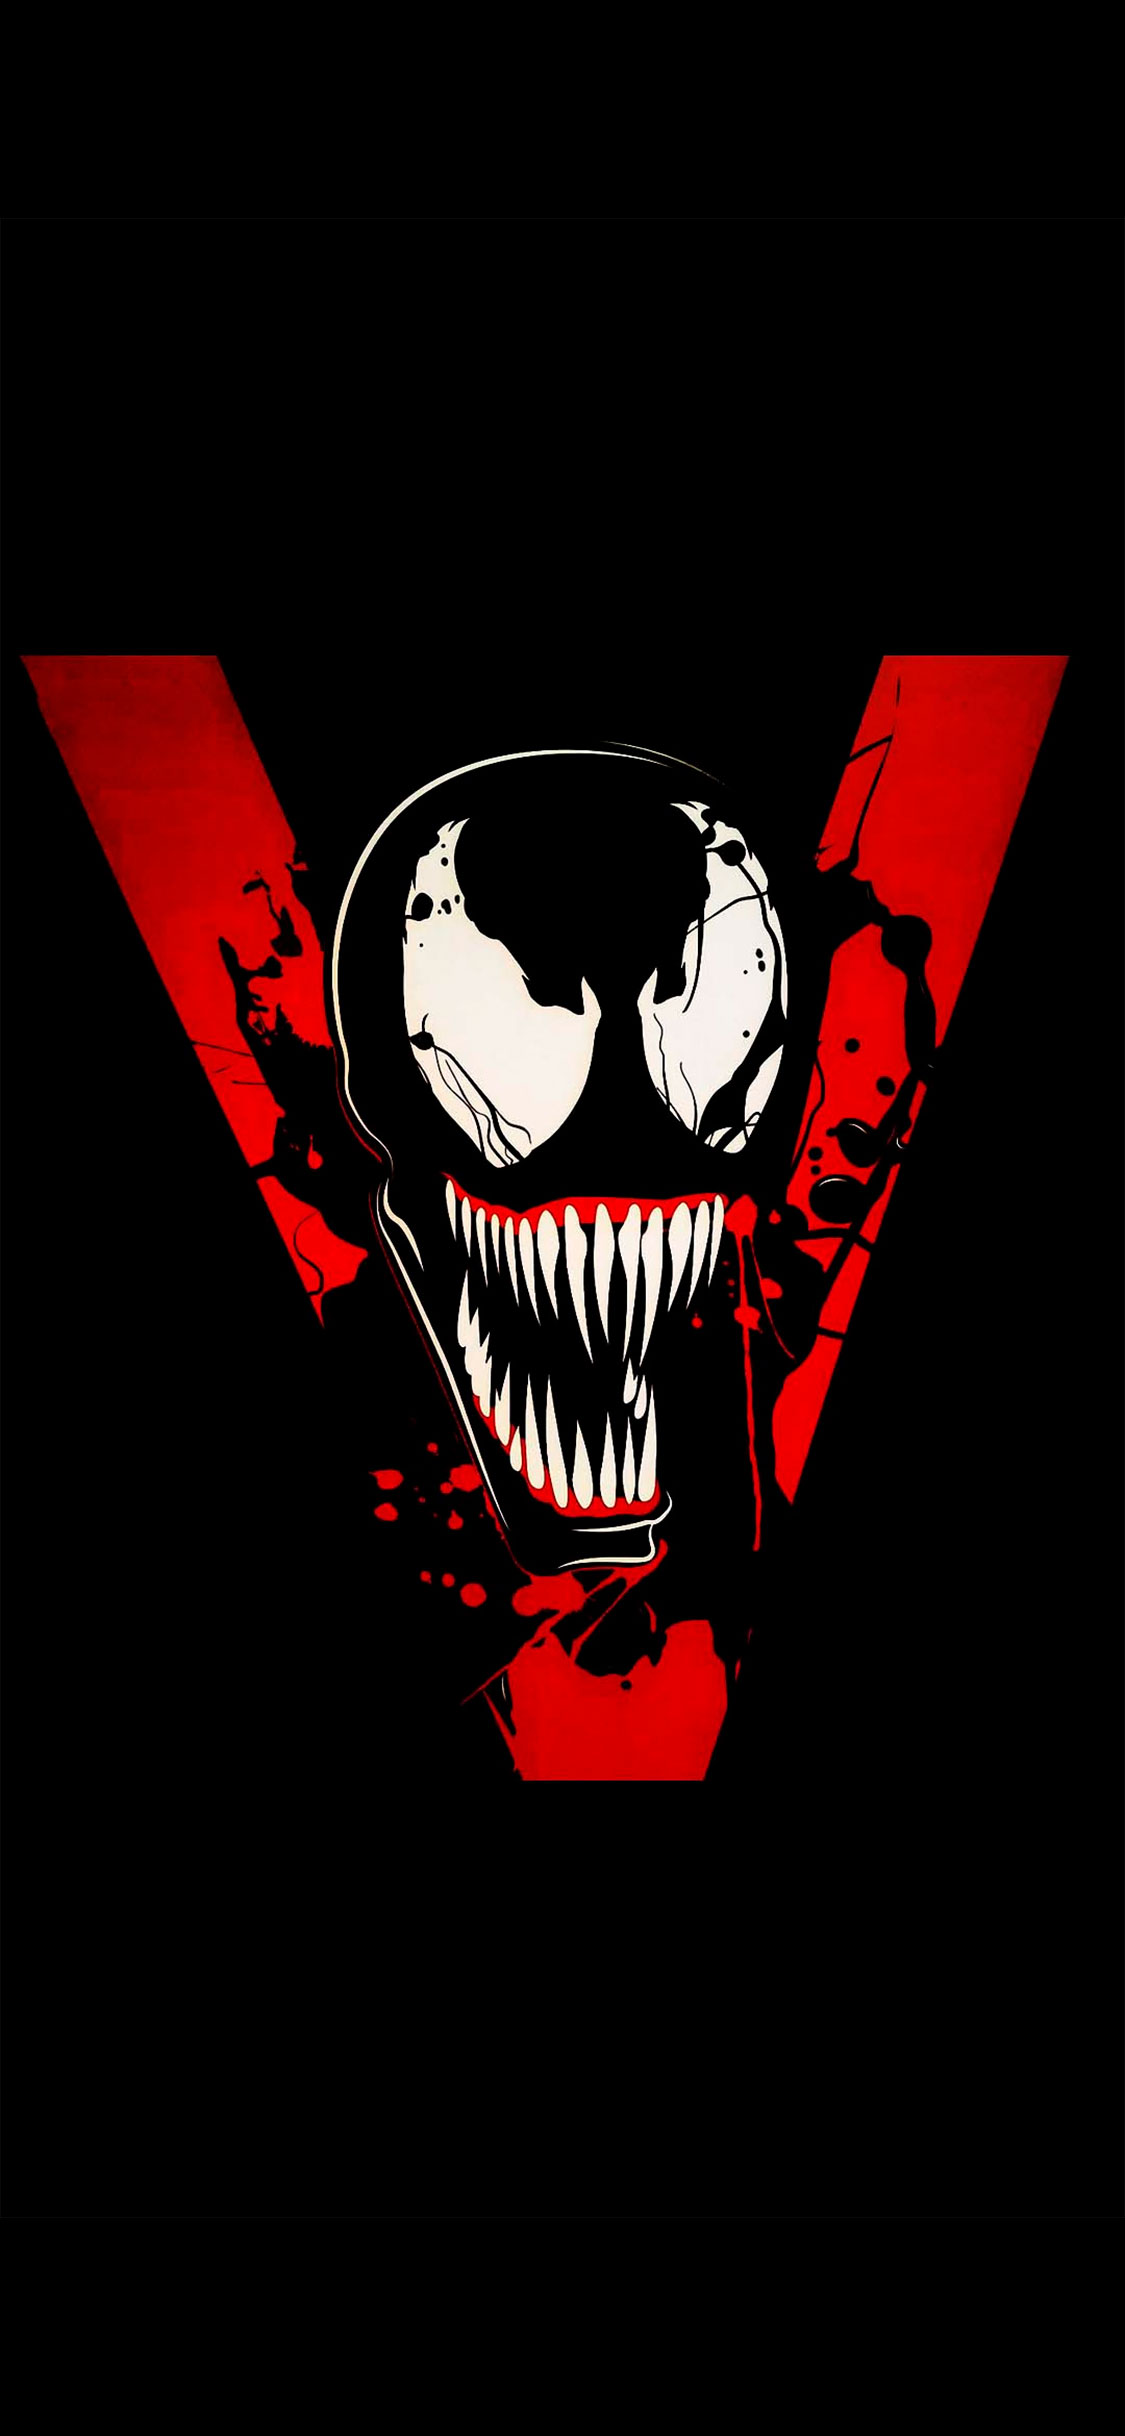 iPhone wallpaper venom2 Fonds d'écran iPhone du 14/05/2018